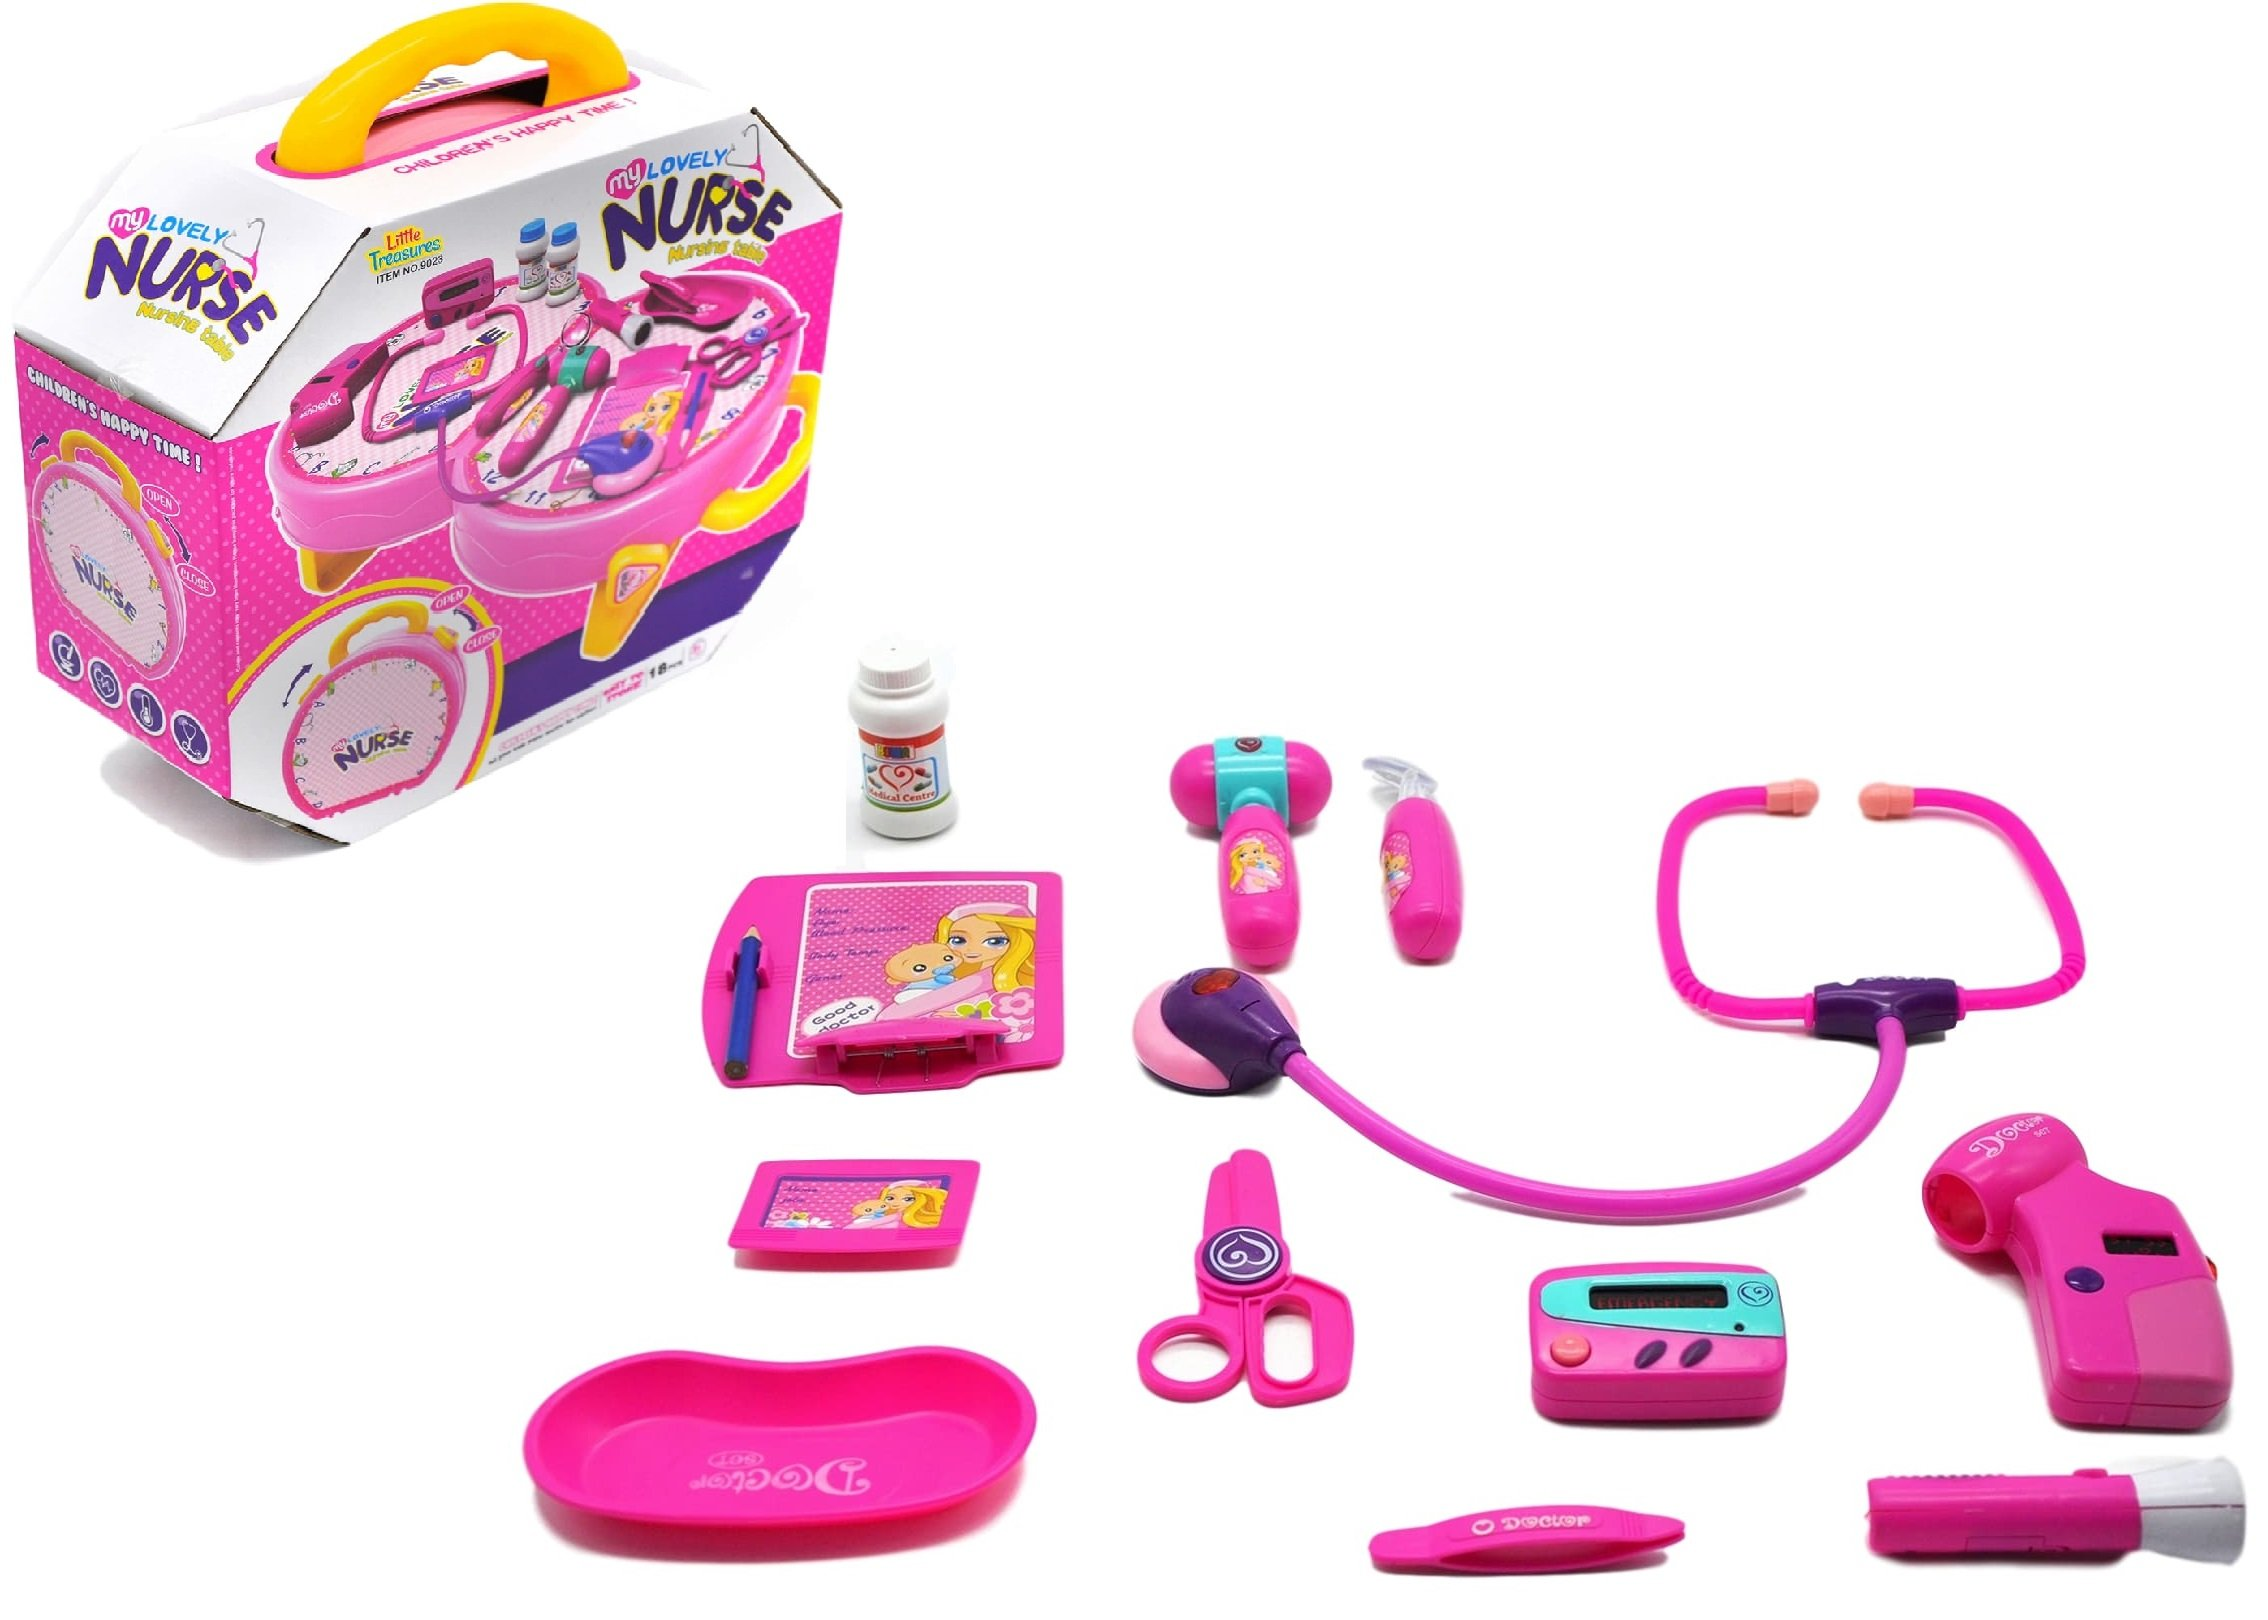 My Lovely Pink Dr Doctor Medical Kit Play-Set for Kids Pretend & Play Tools Toy Set - Great Gift for Your Little Helper who Wants to Help Save The World!